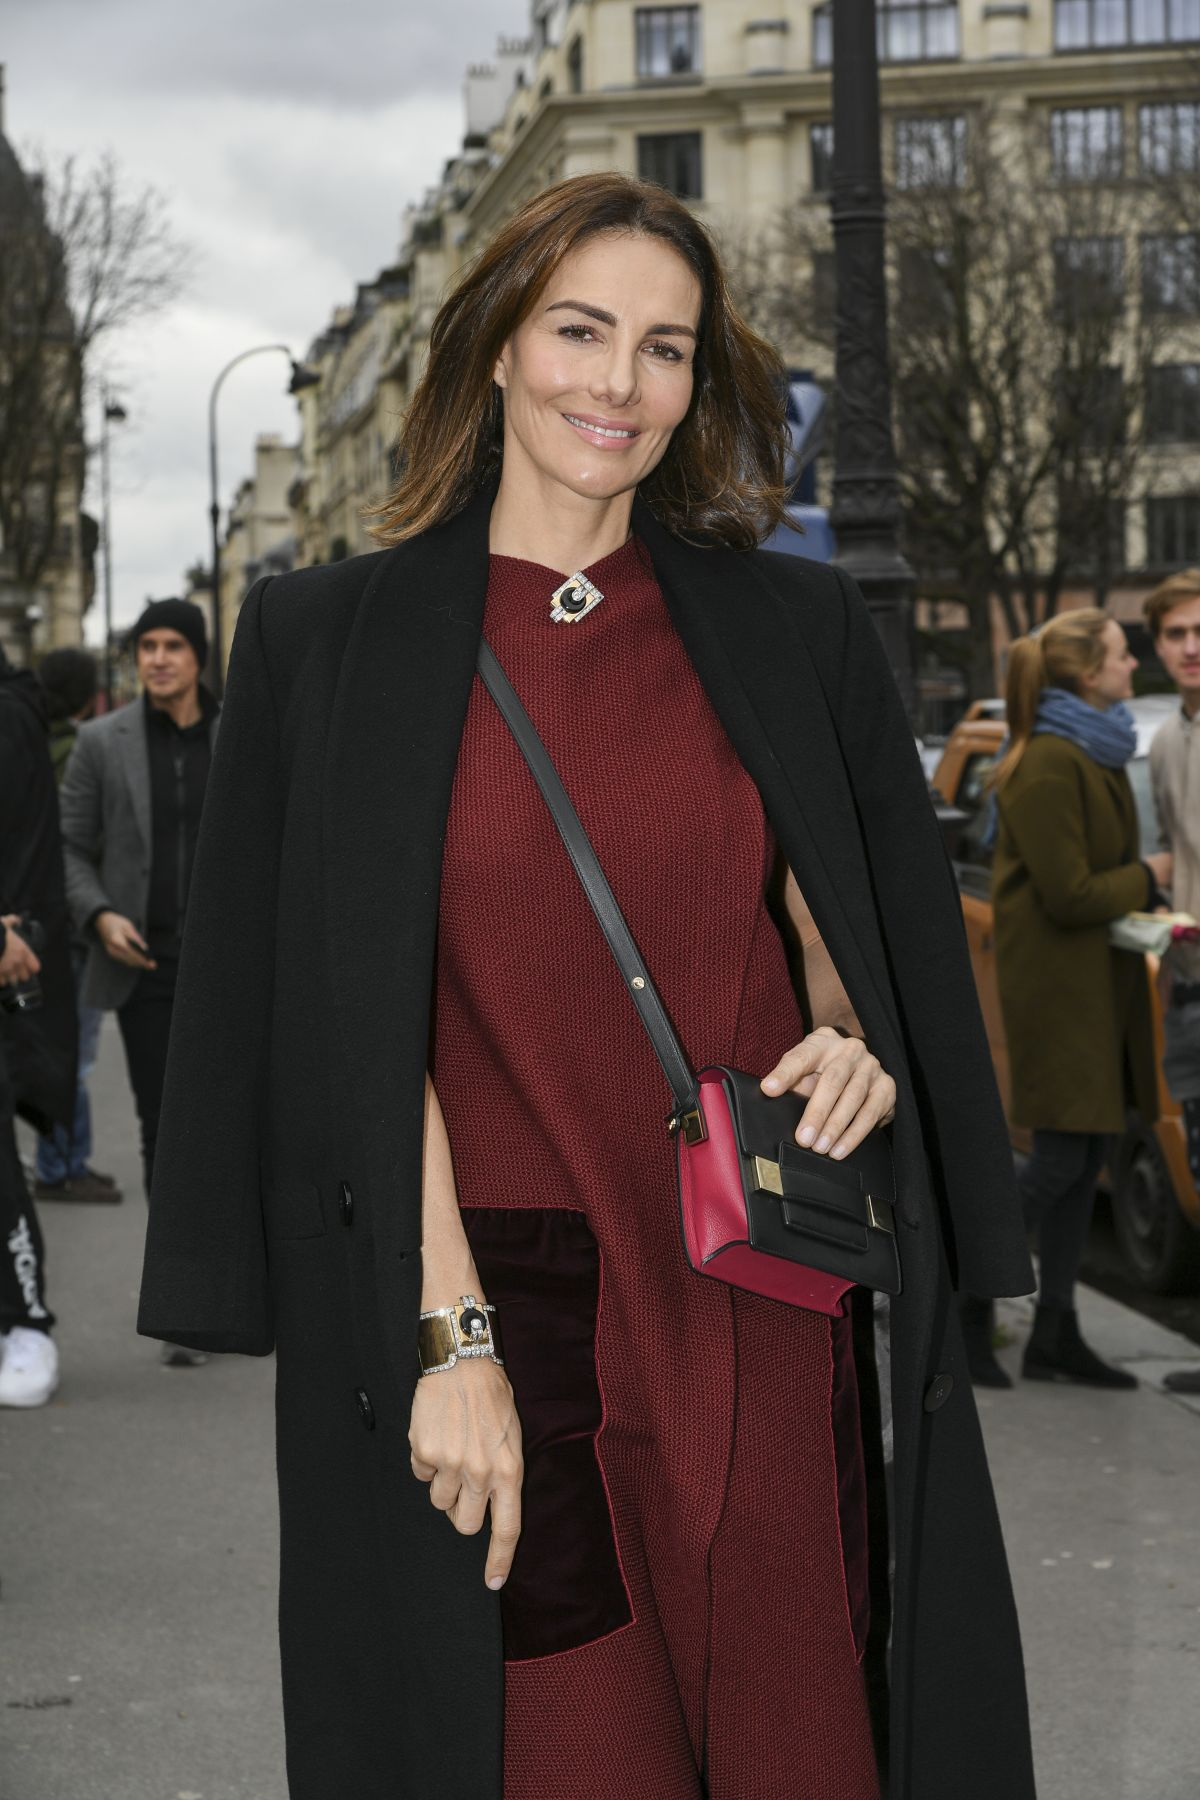 ADRIANA ABASCAL at Moncler Fashion Show in Paris 03/07/2017